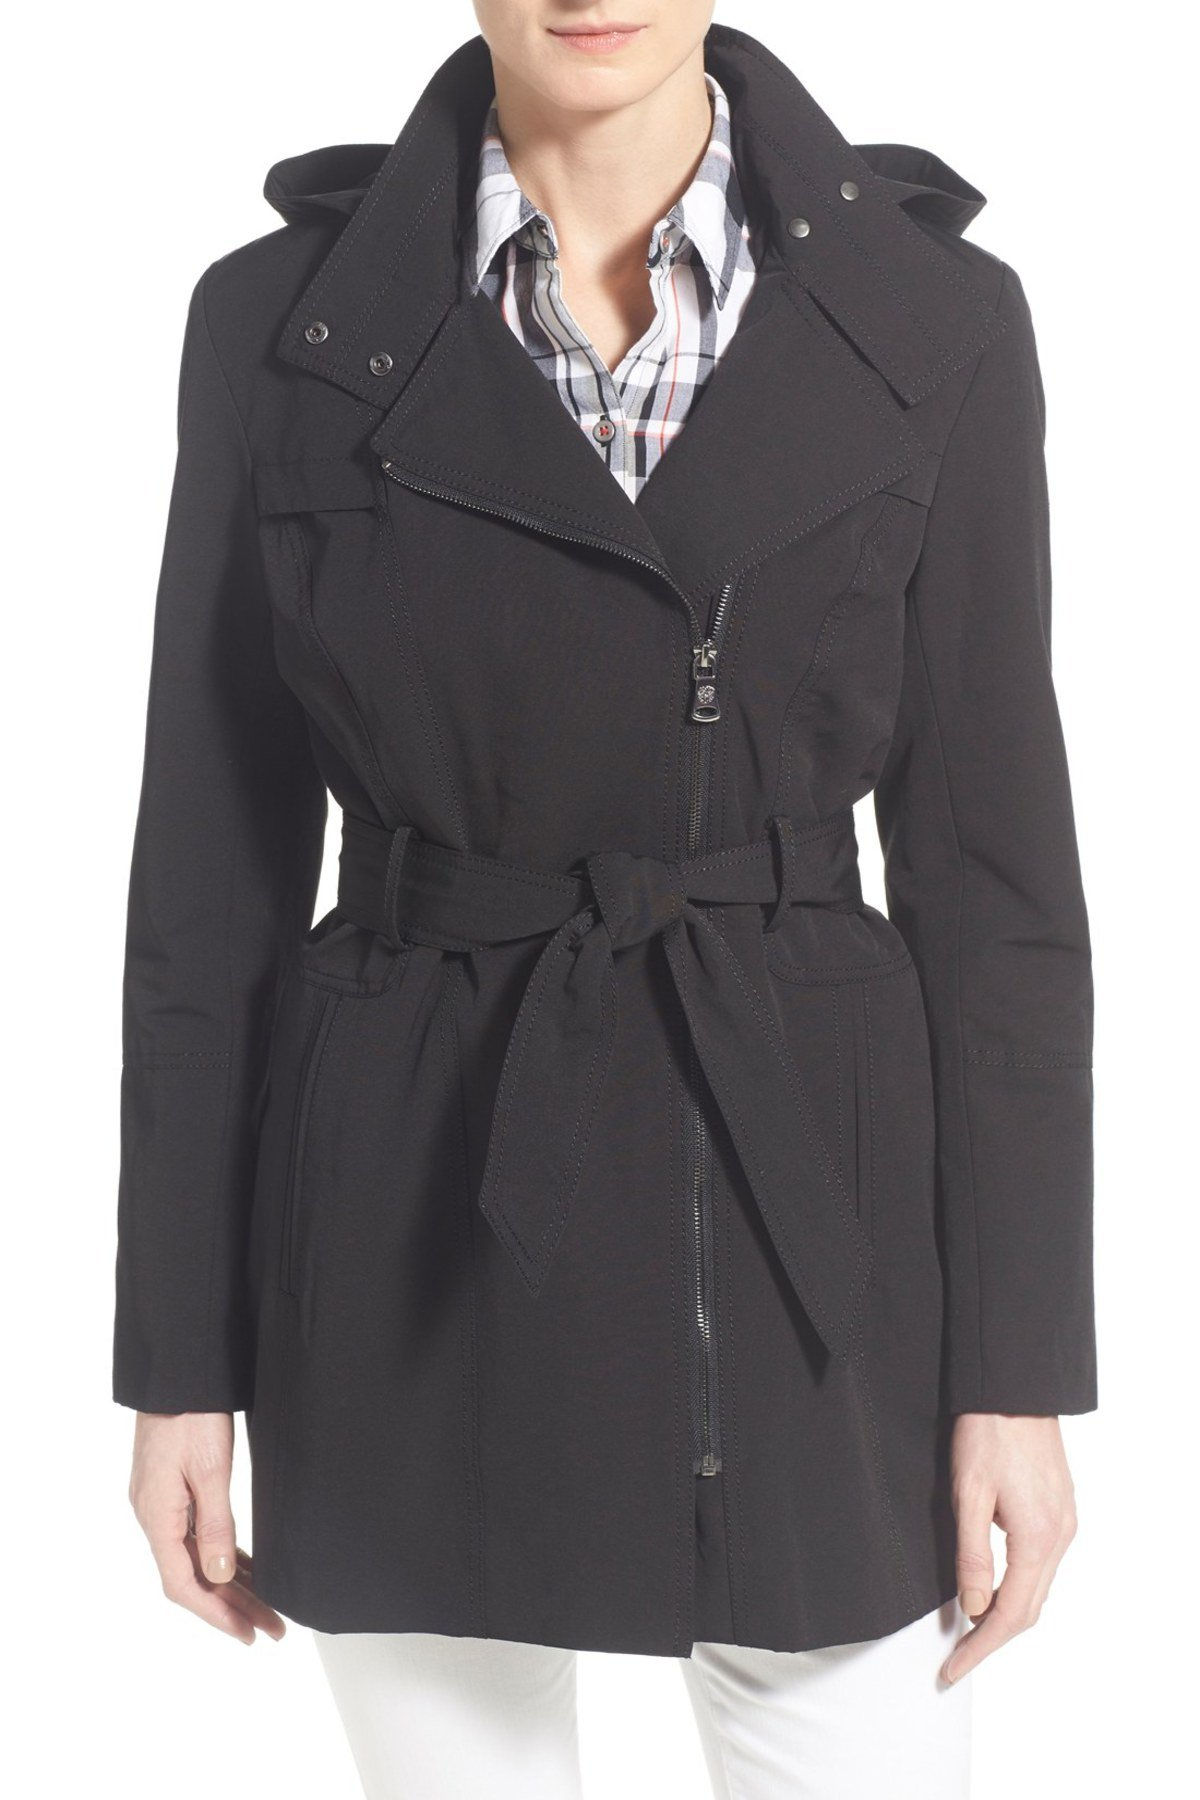 trench coats for women vince camuto - belted asymmetrical zip trench coat YKNQAJF